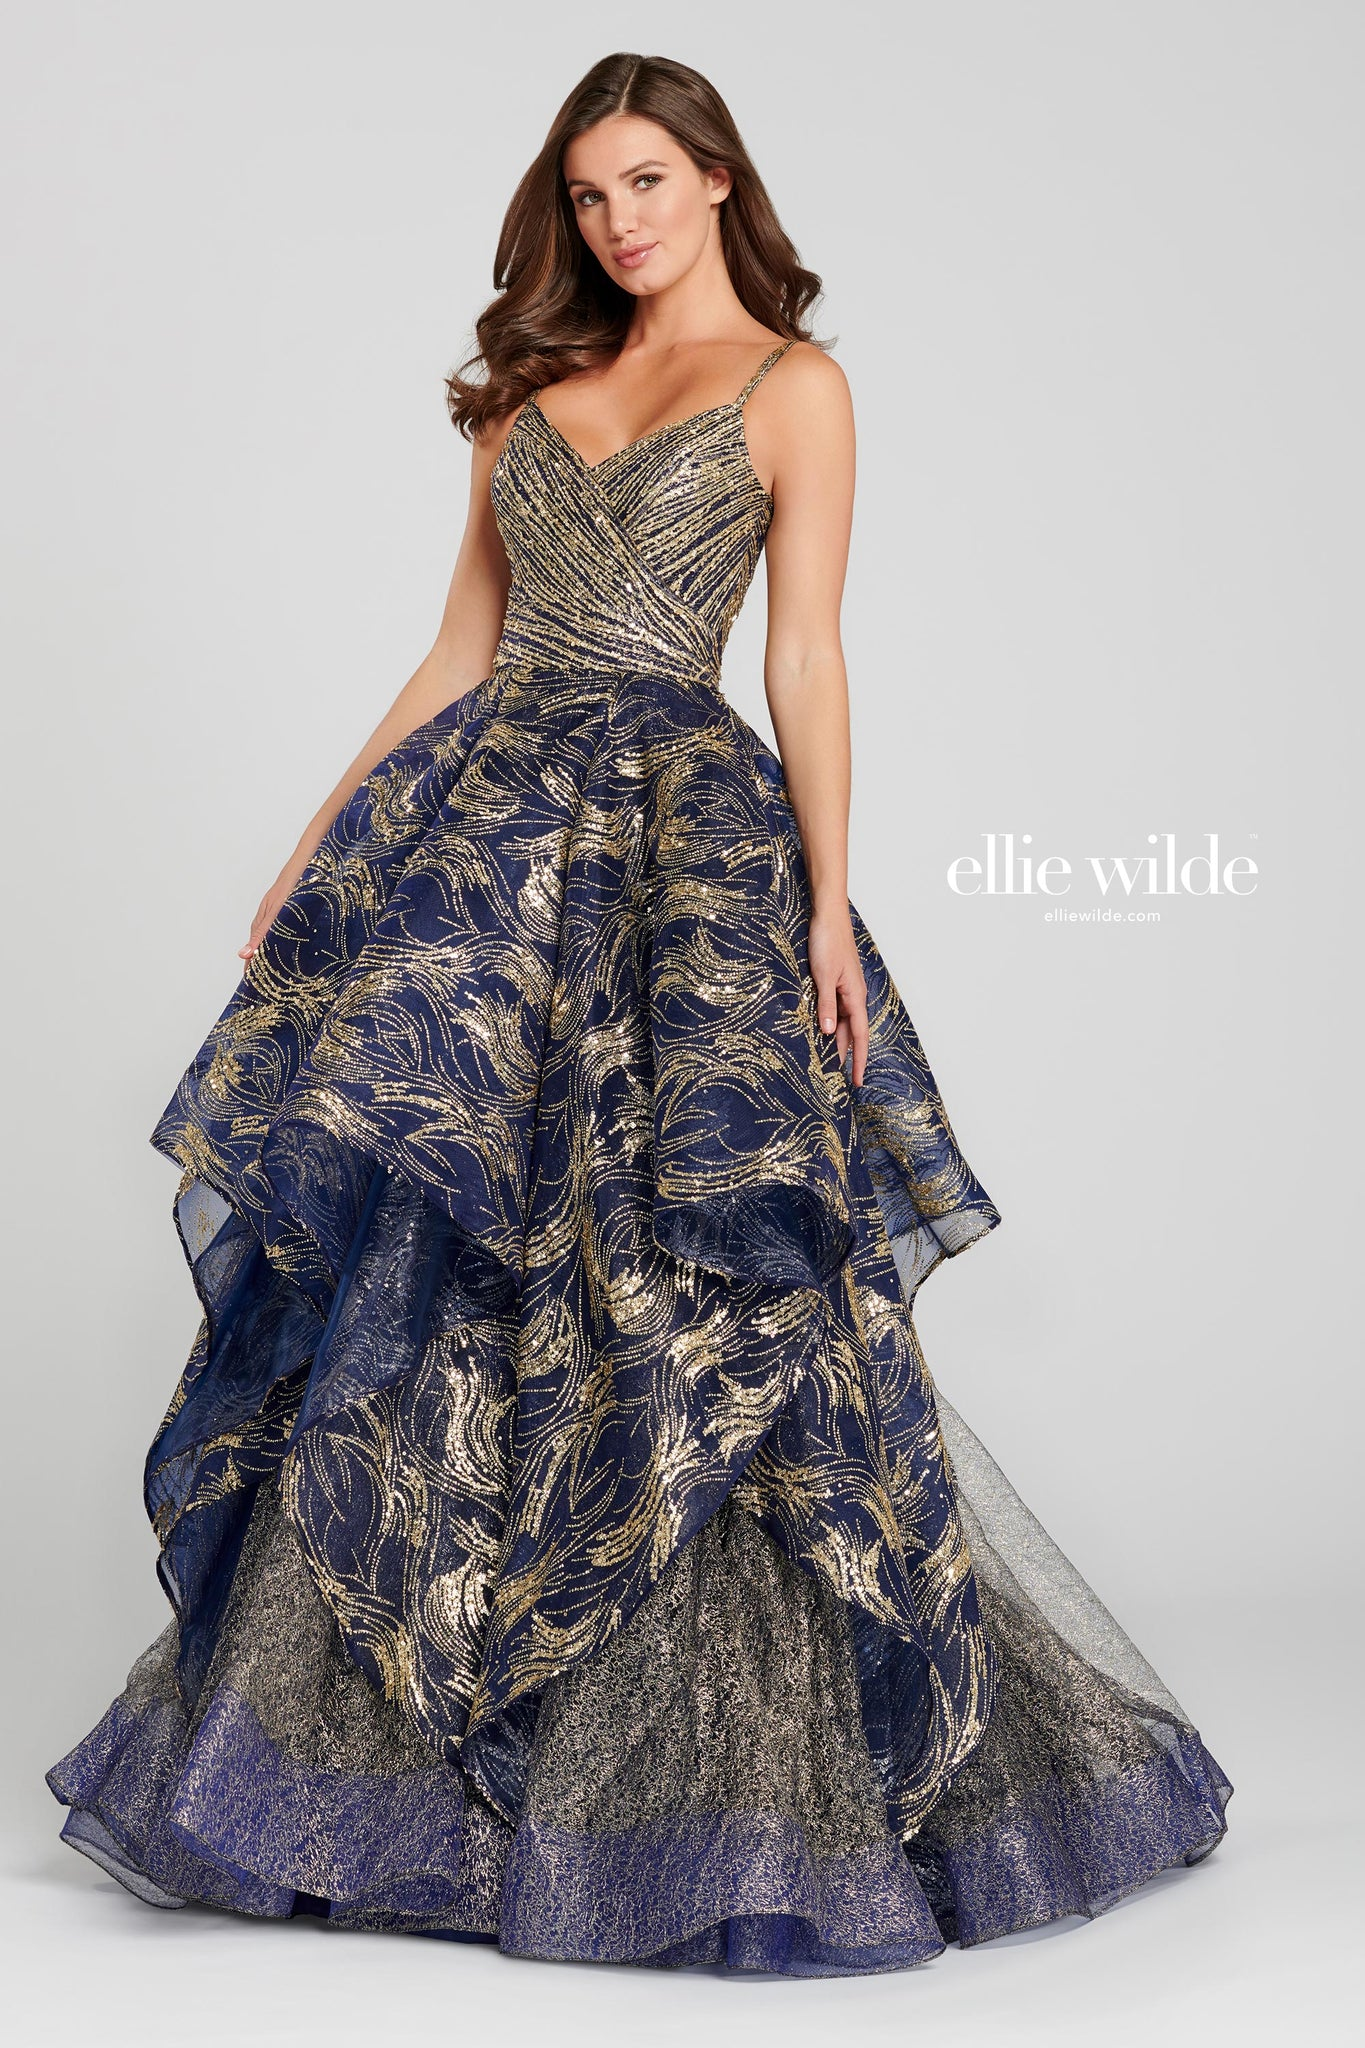 Ellie Wilde Navy & Gold Ball Gown - Gissings Boutique